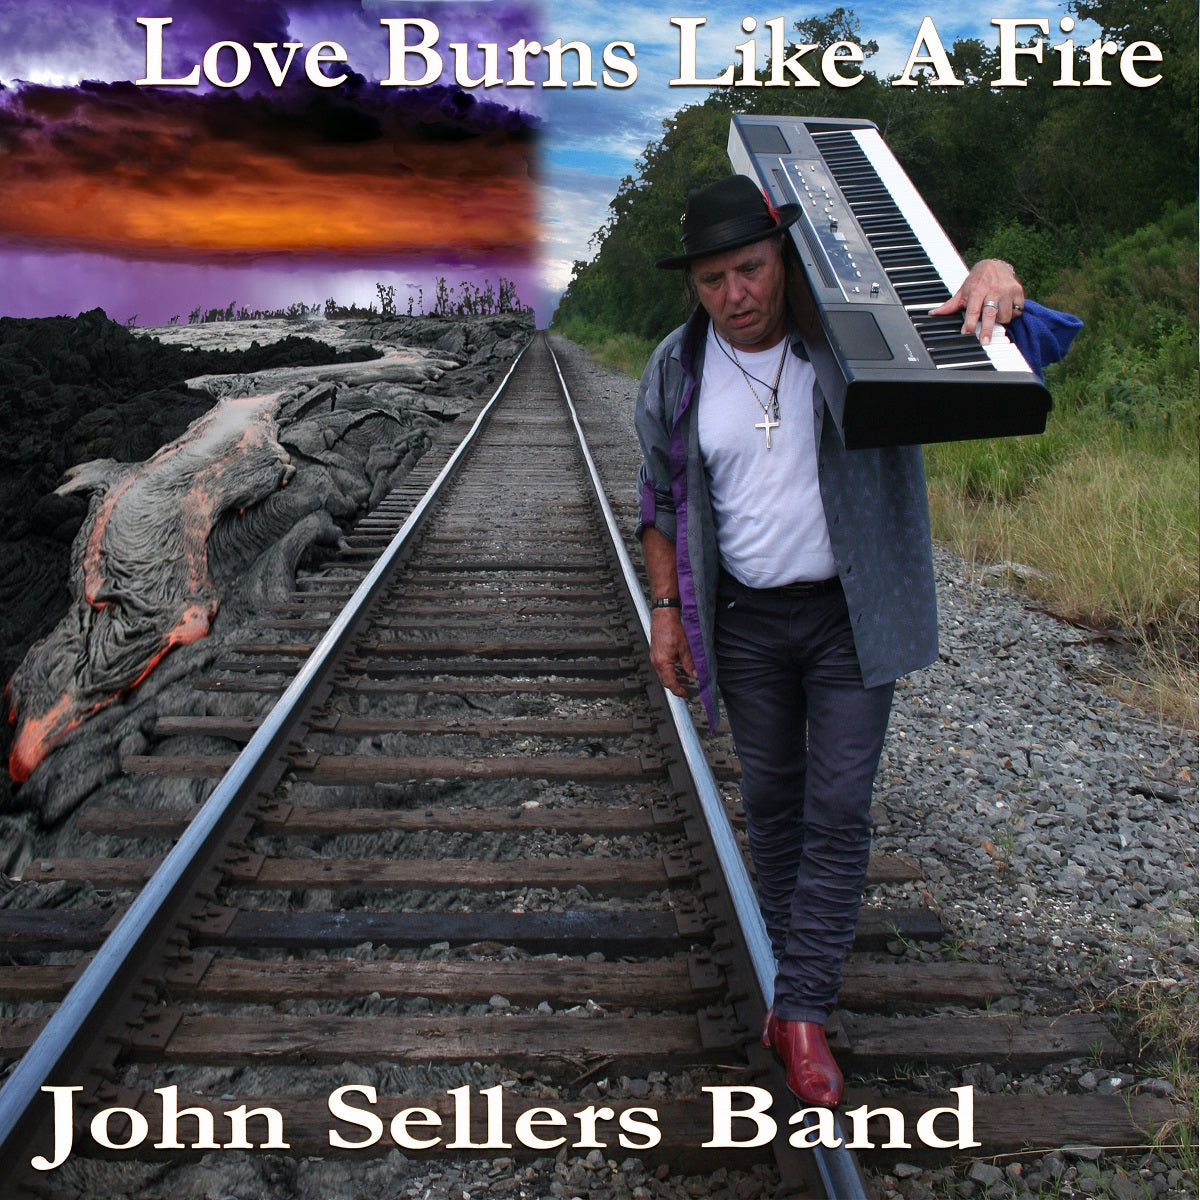 John Sellers Band – 'Love Burns Like A Fire'